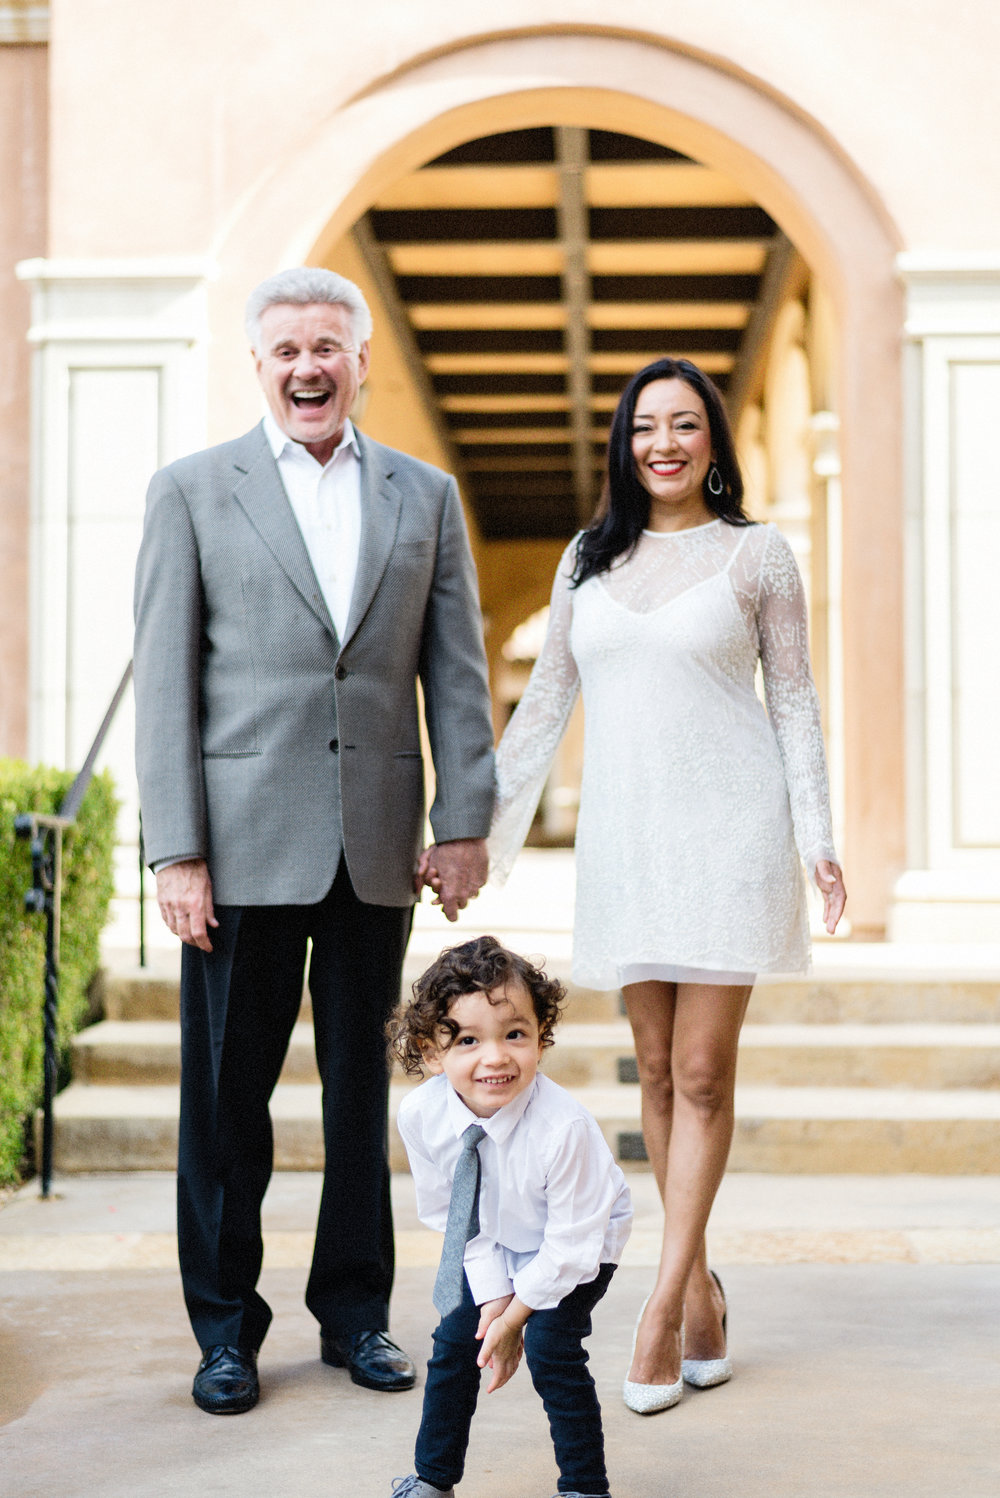 San Diego Portrait Photographer | Family Portrait